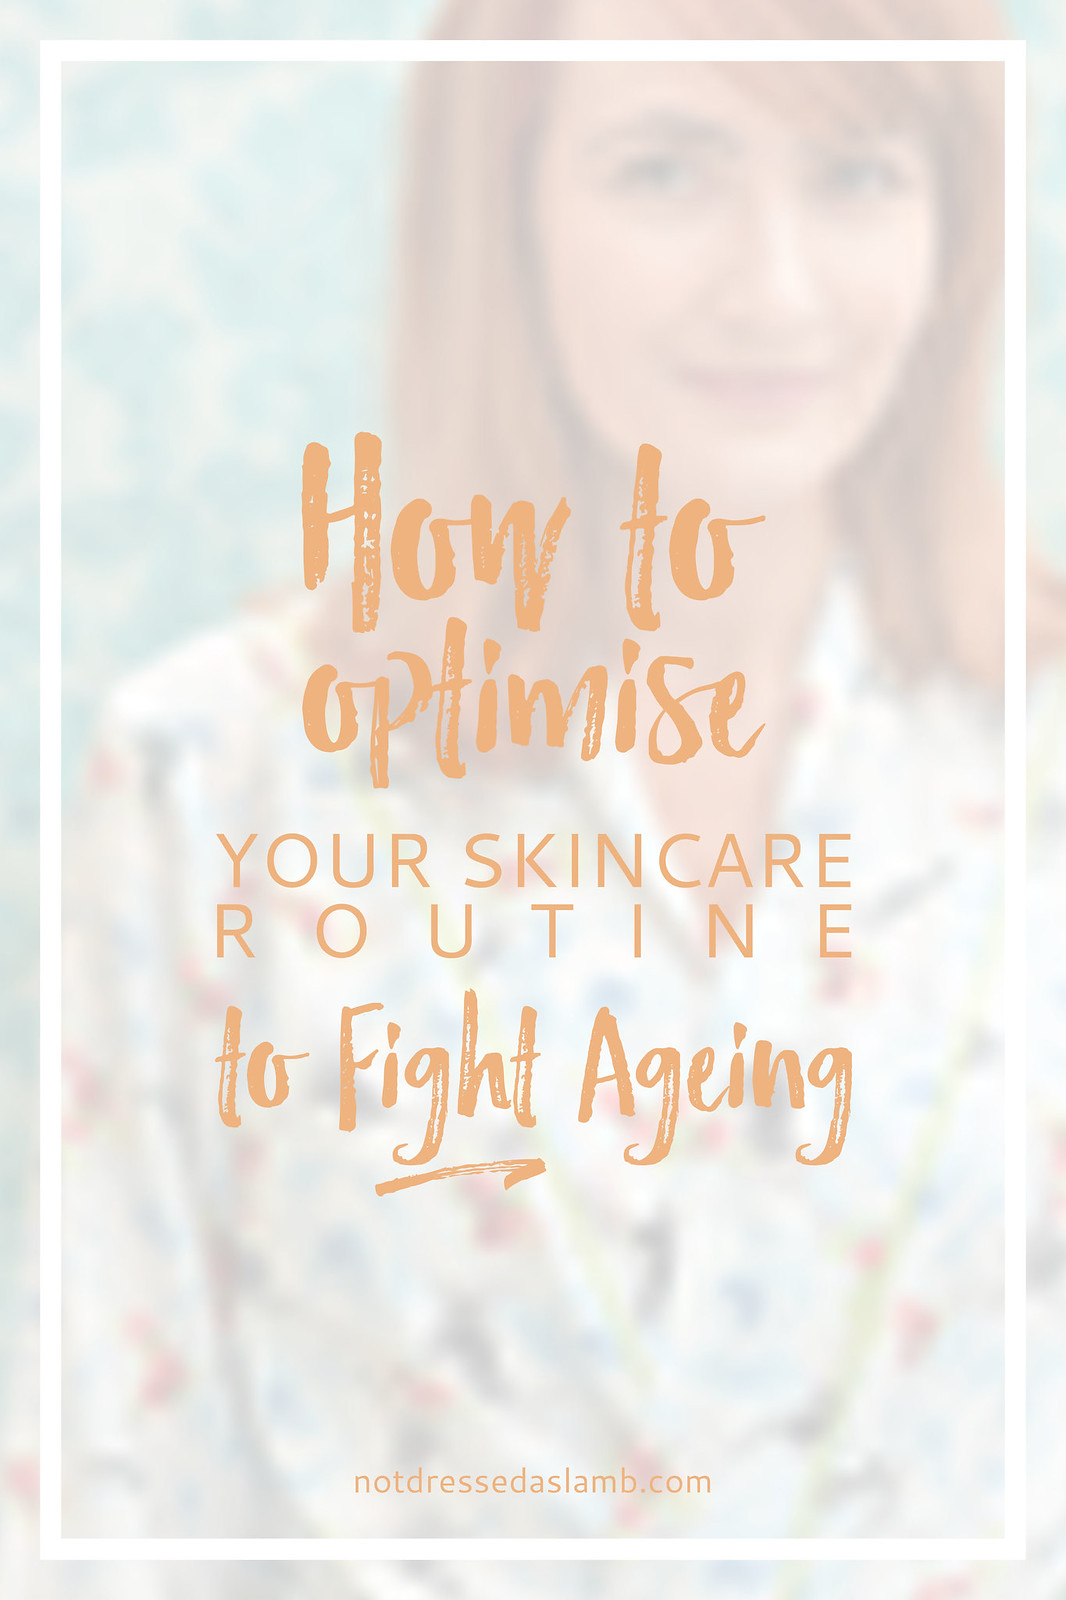 How to Optimise Your Skincare Routine to Fight Ageing